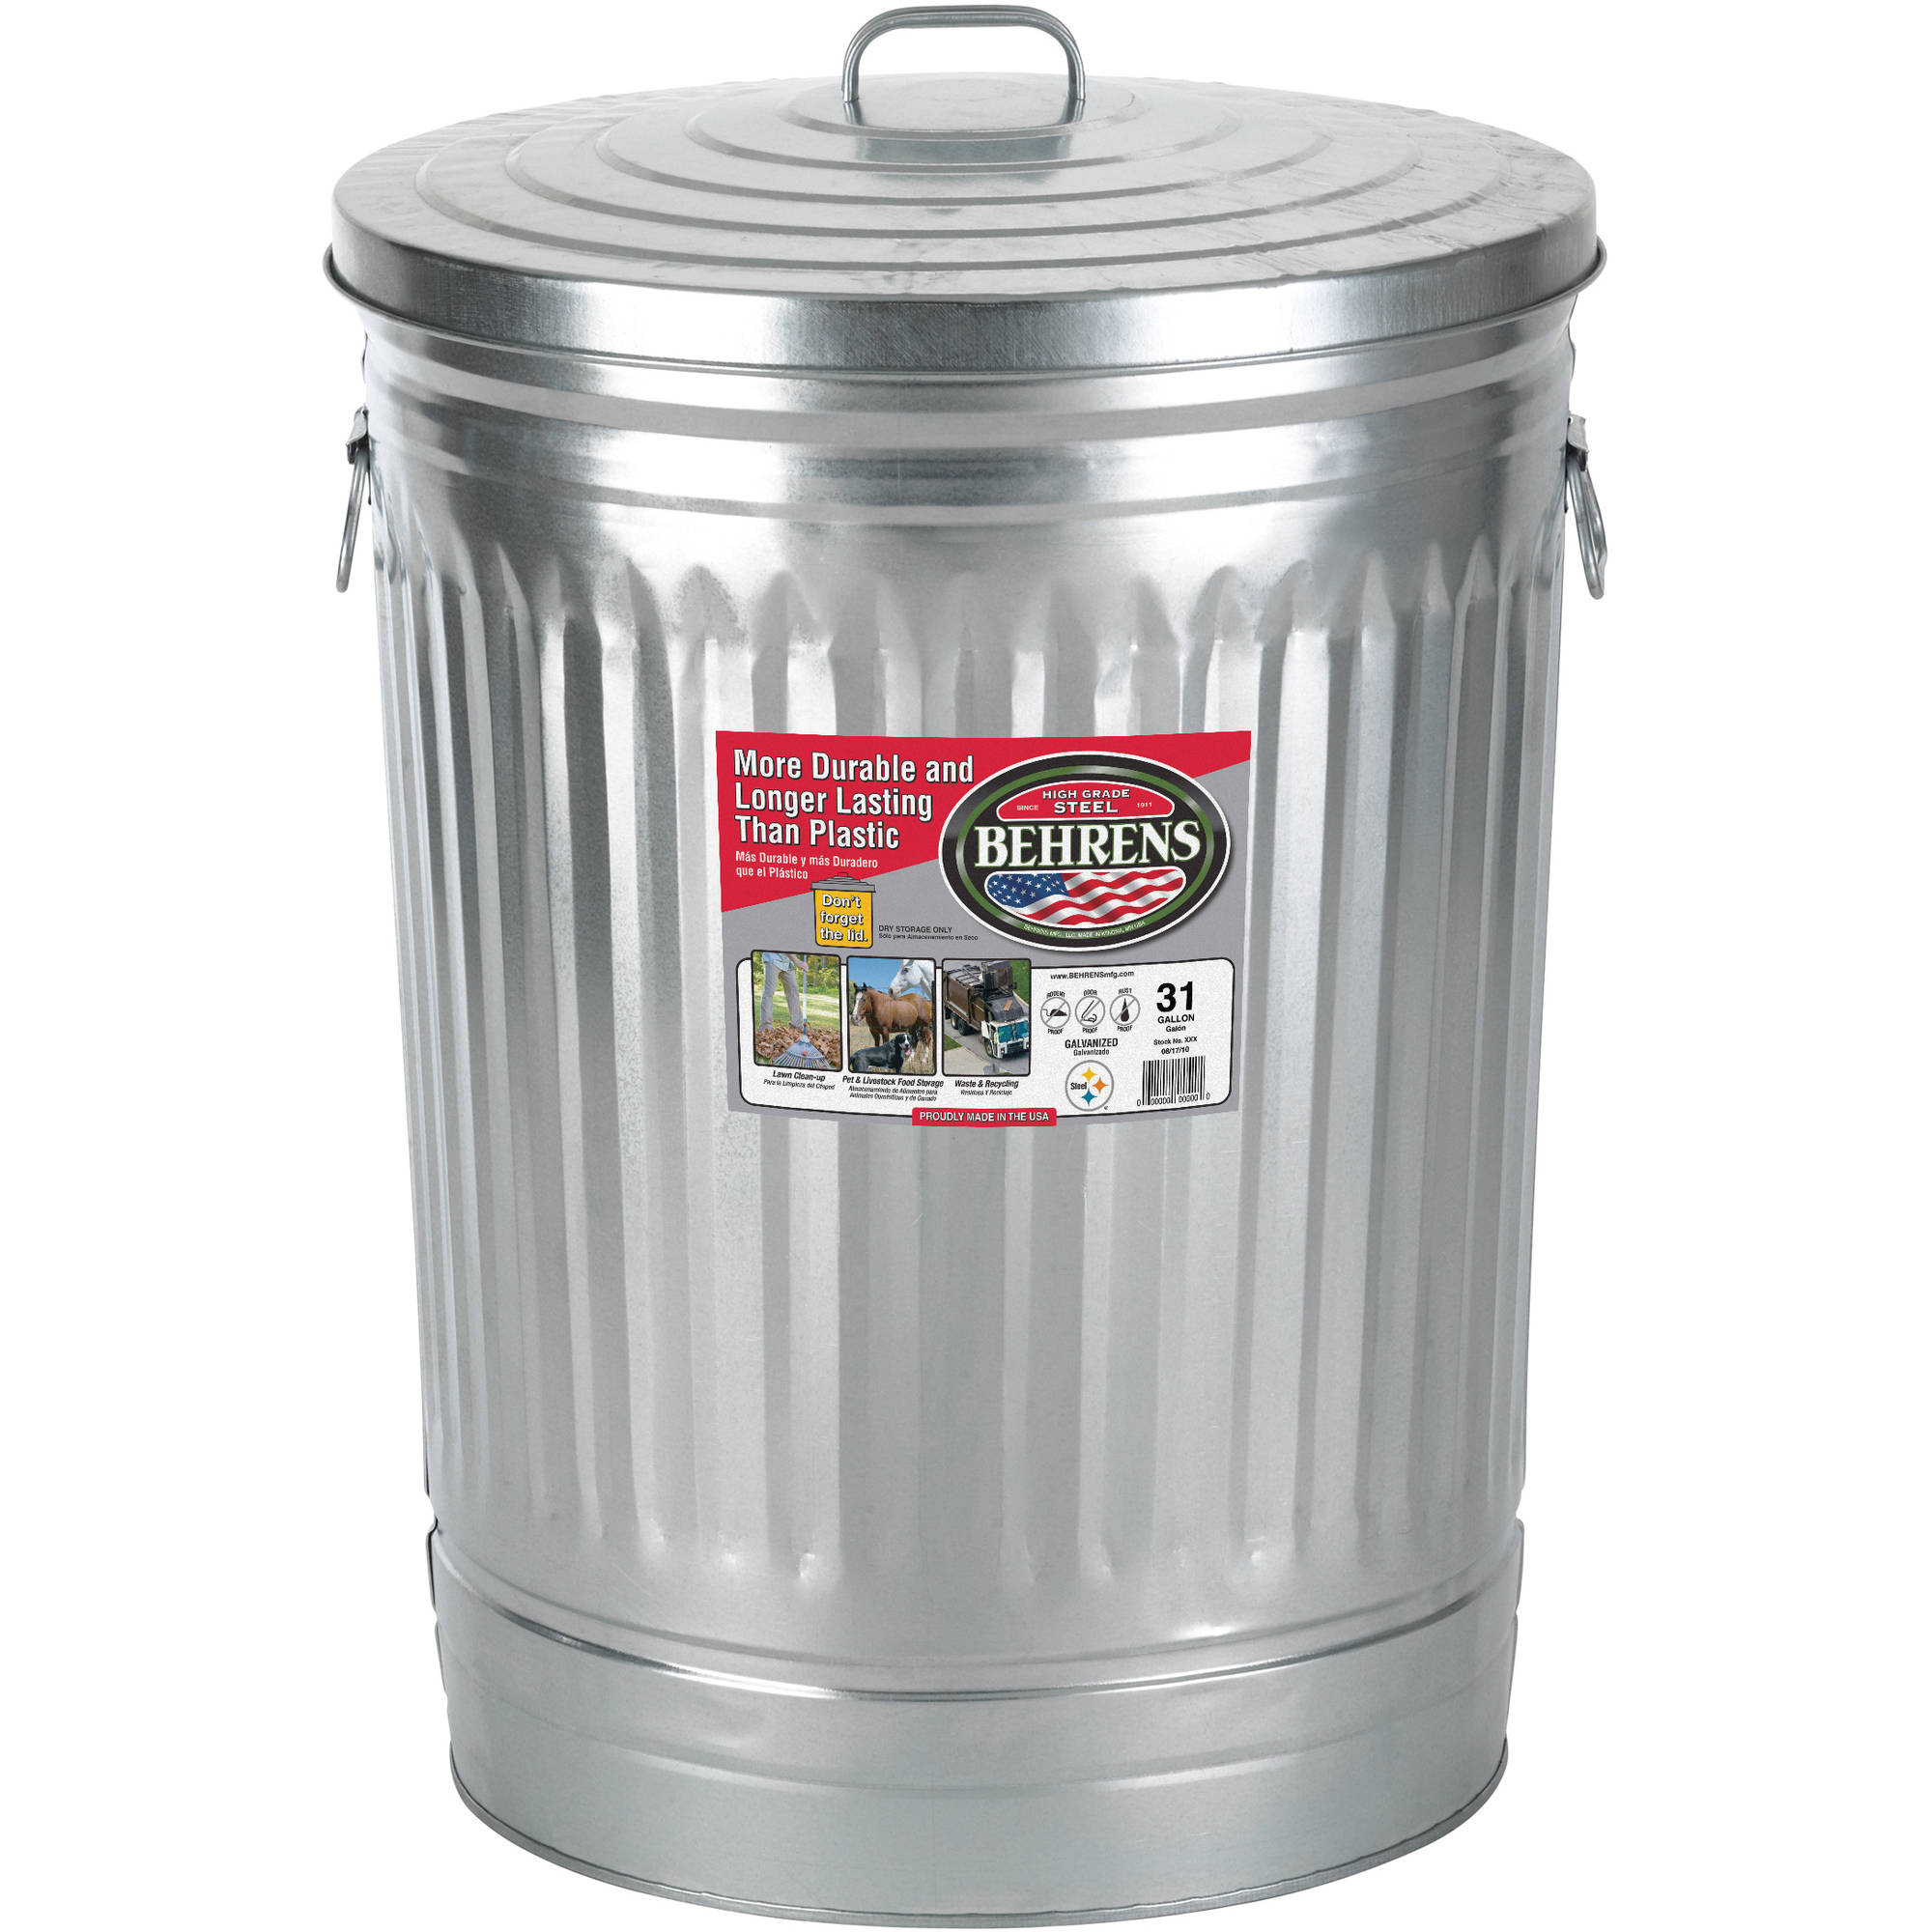 Behrens 31-Gallon Steel Trash Can